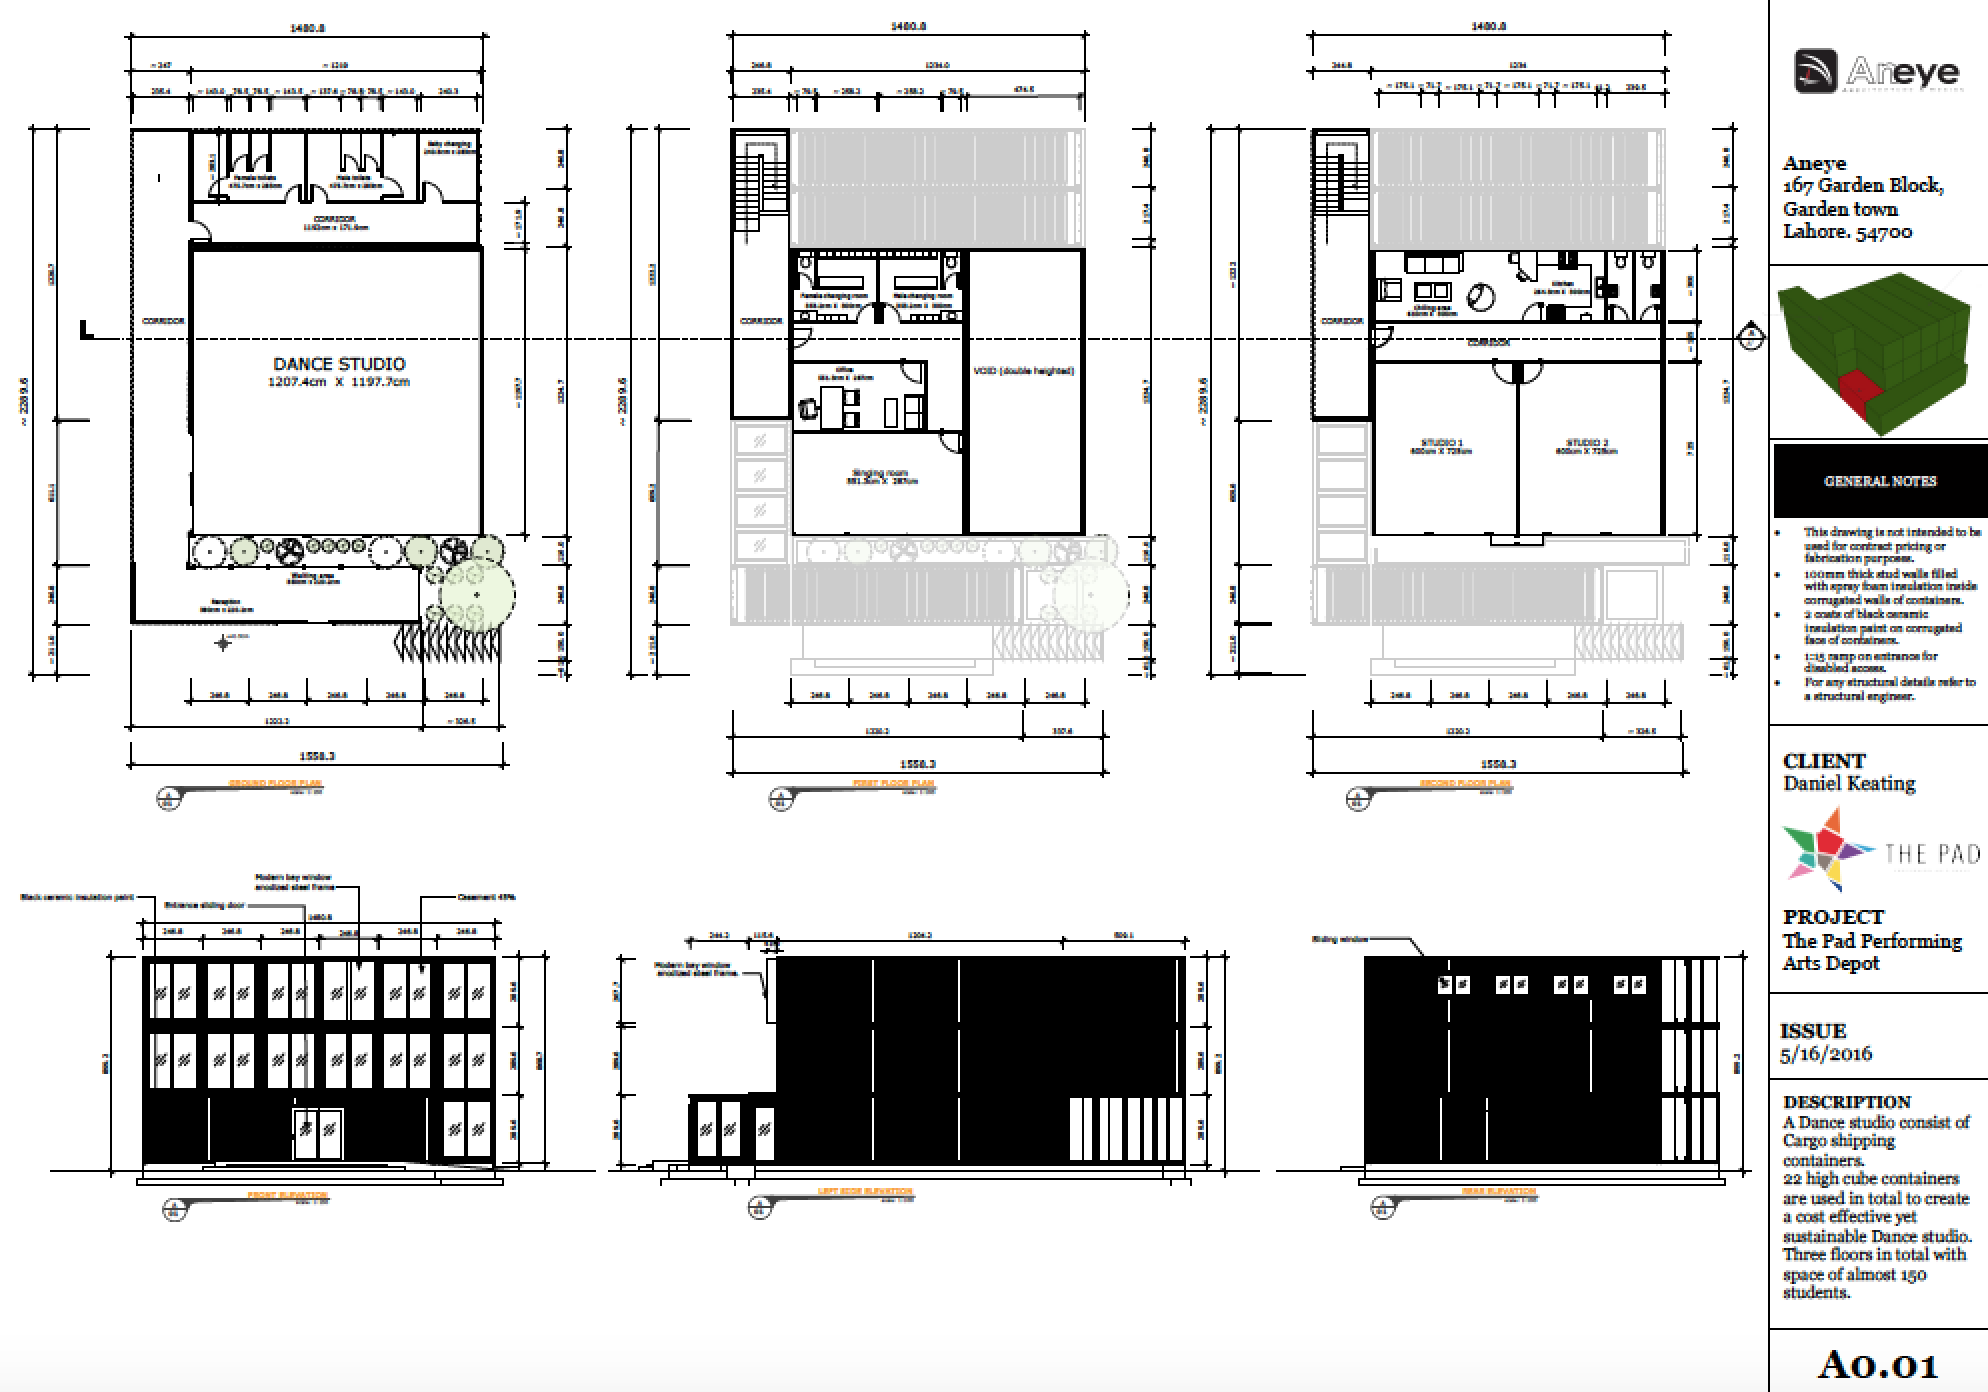 Plans and overview